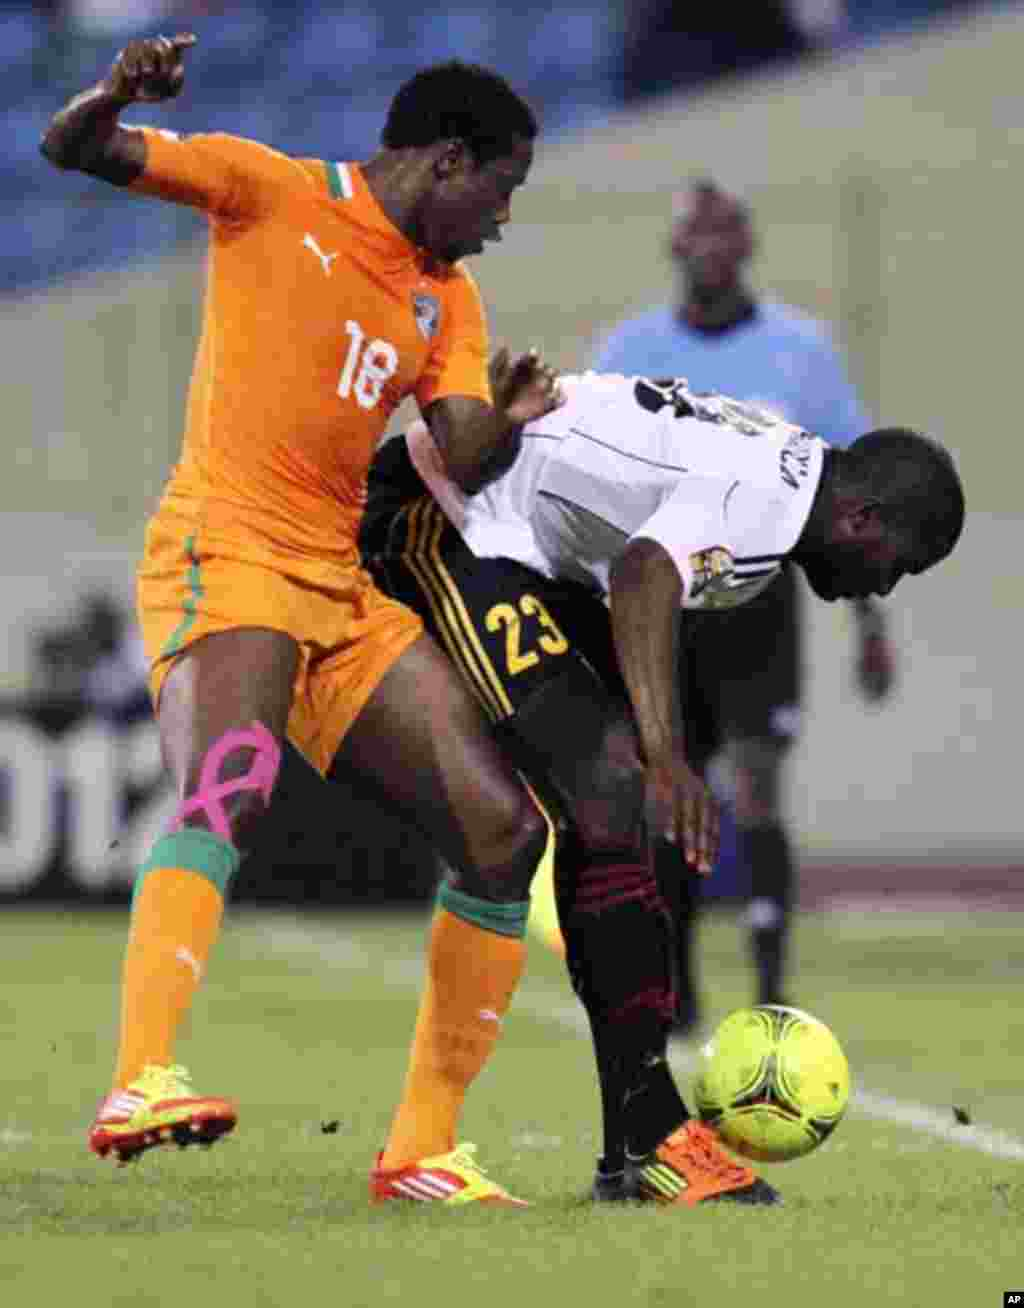 Abdul Kader Keita (L) of Ivory Coast fights for the ball with Jose Pierre Vunguidica of Angola during their African Nations Cup soccer match in Malabo January 30, 2012.